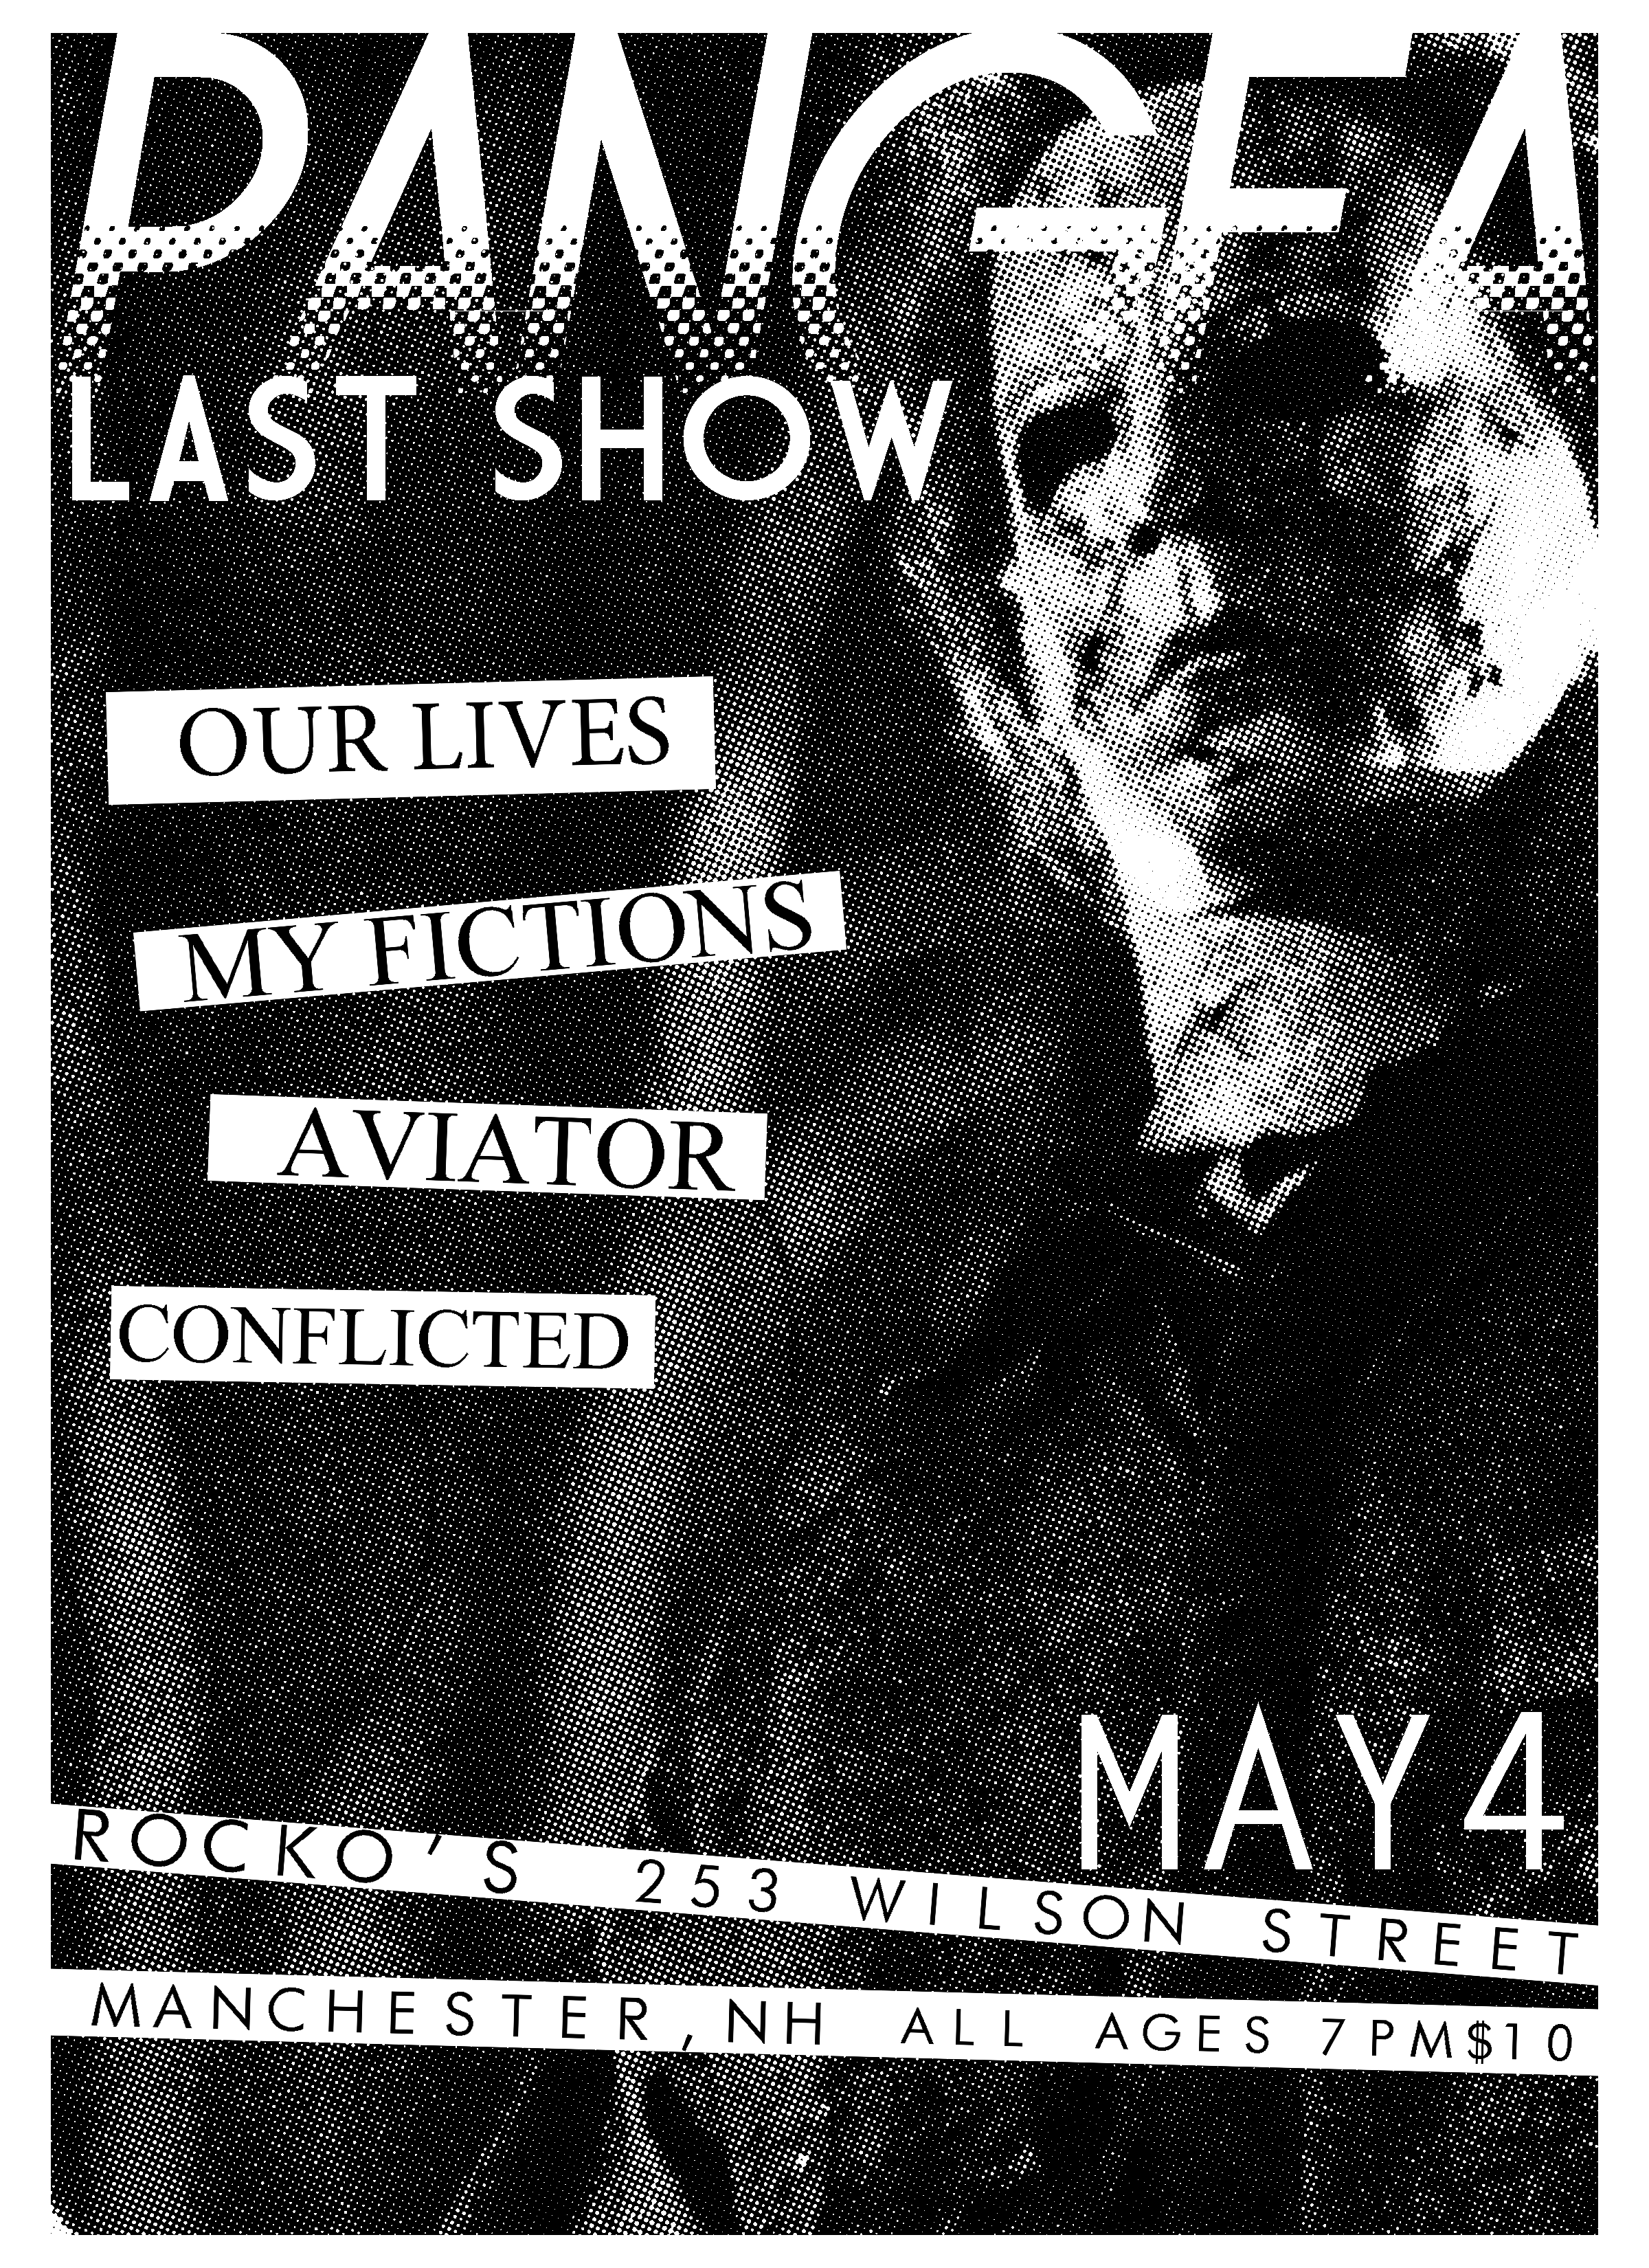 Hardcore bands, NH rock show flyer